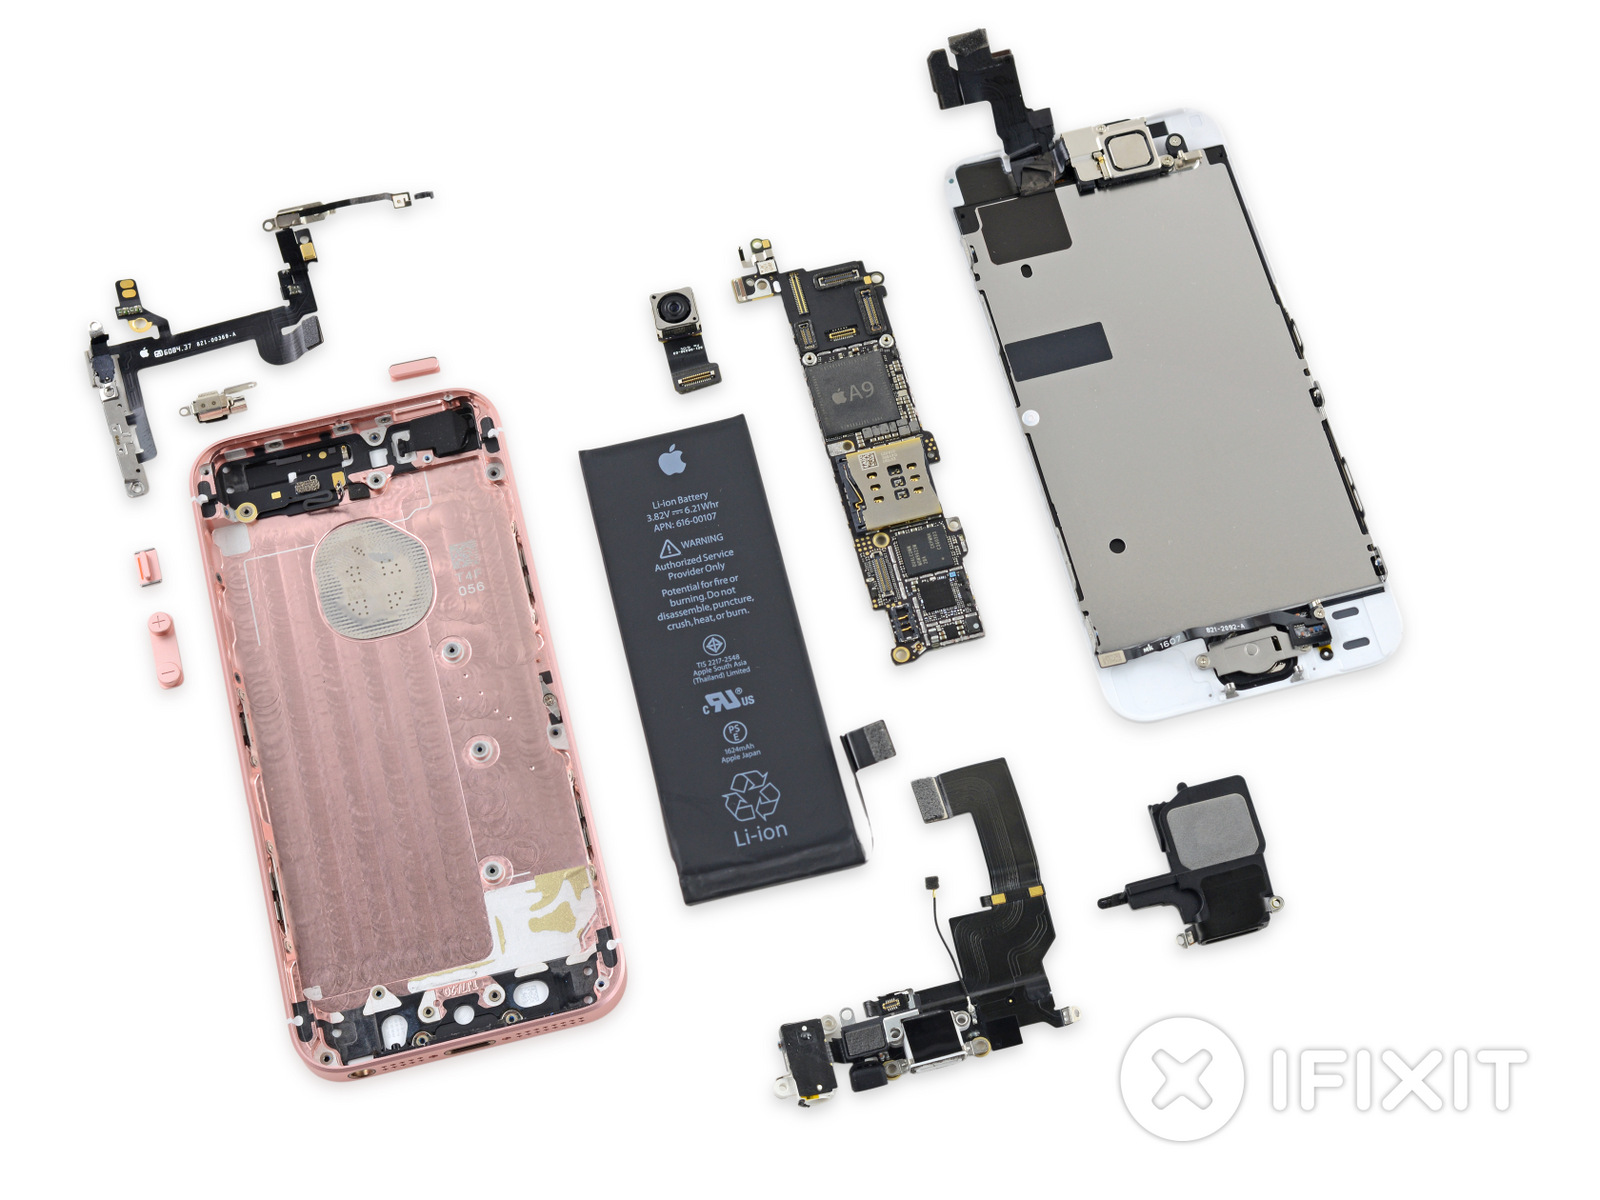 iPhone SE iFixit Teardown